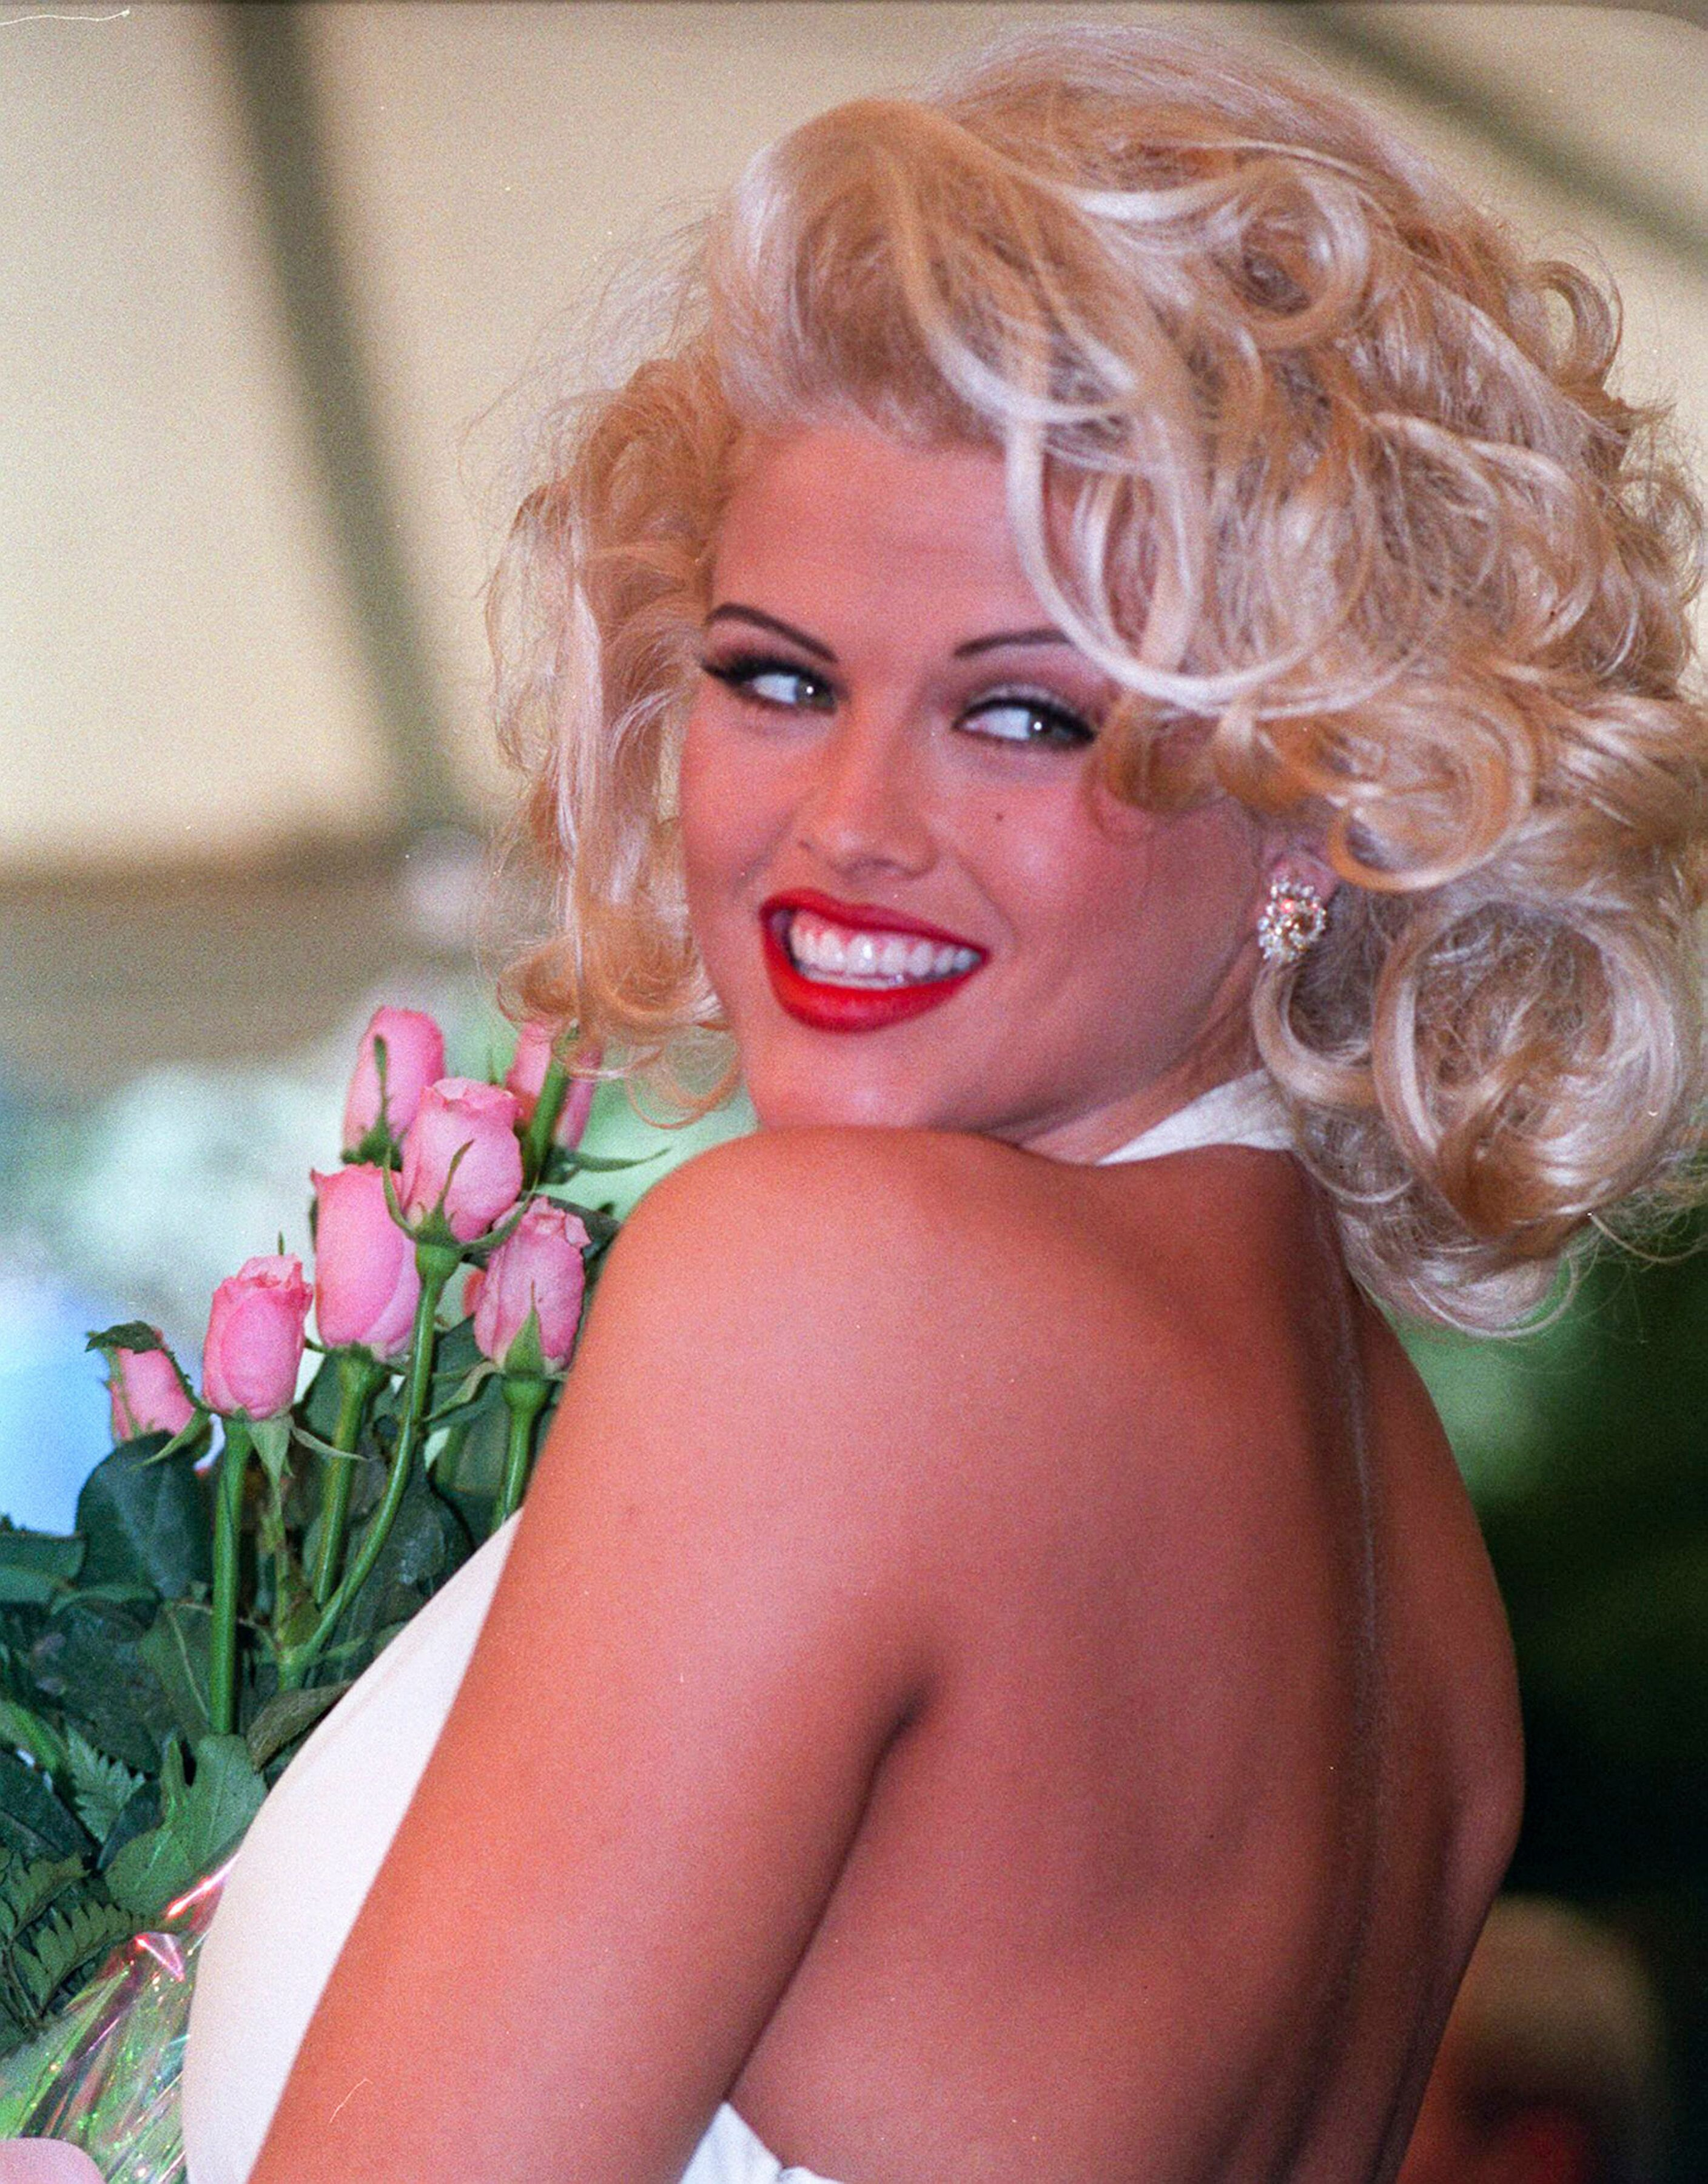 American model, actress and television personality Anna Nicole Smith. | Source: Getty Images